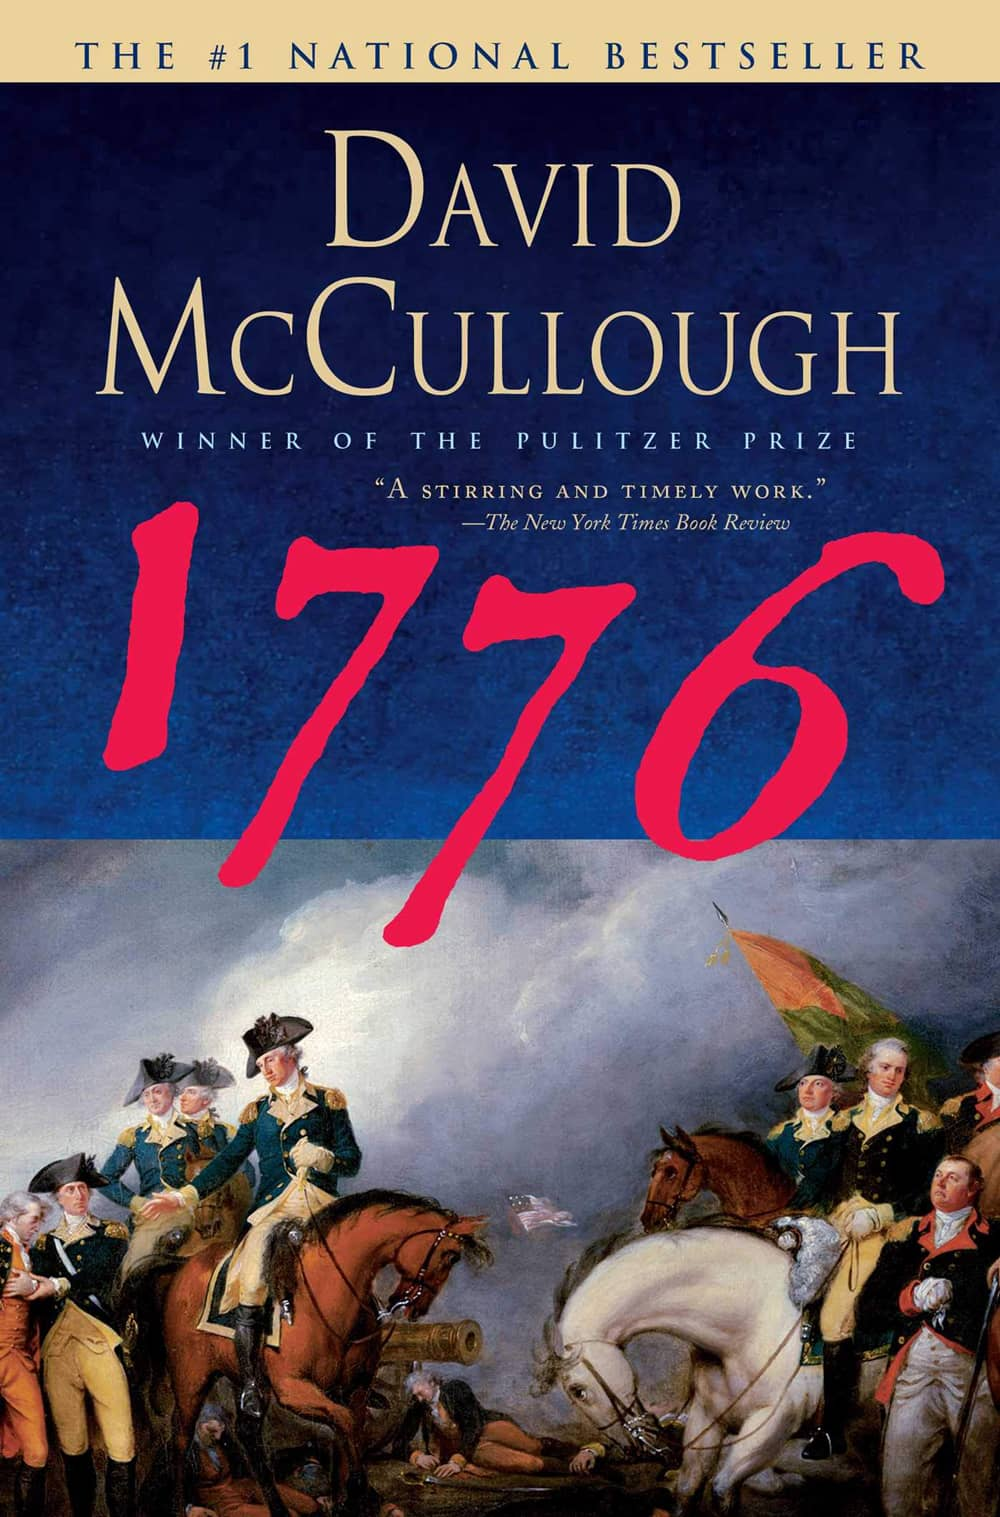 The cover of 1776